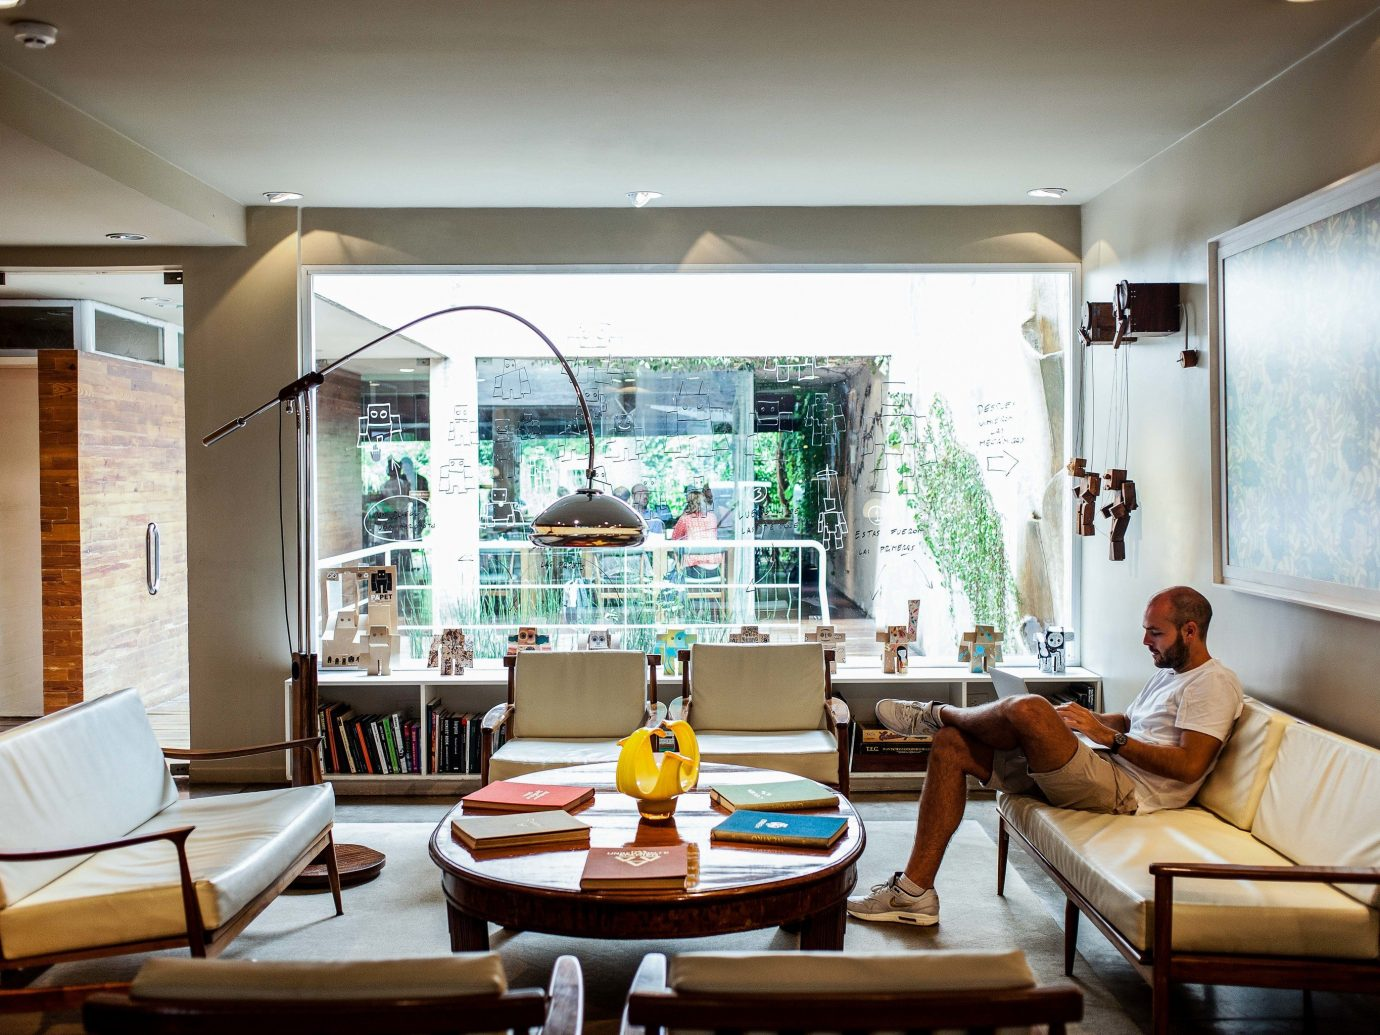 Boutique Hotels Luxury Travel indoor ceiling table floor Living room wall living room interior design furniture dining room window restaurant Lobby area